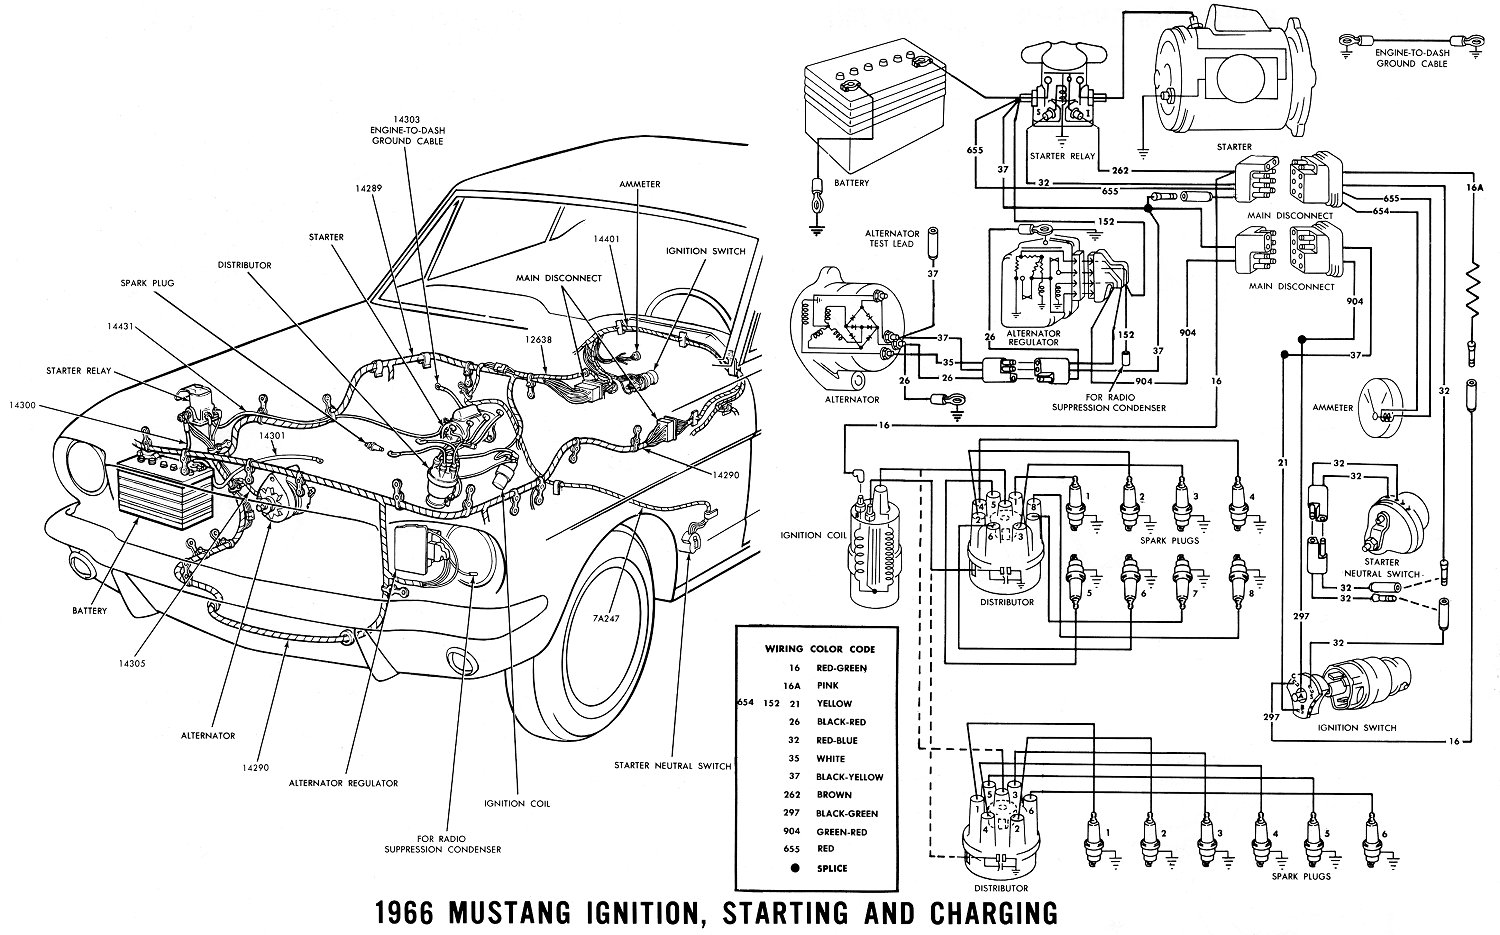 hight resolution of 1966 mustang ignition starting and charging